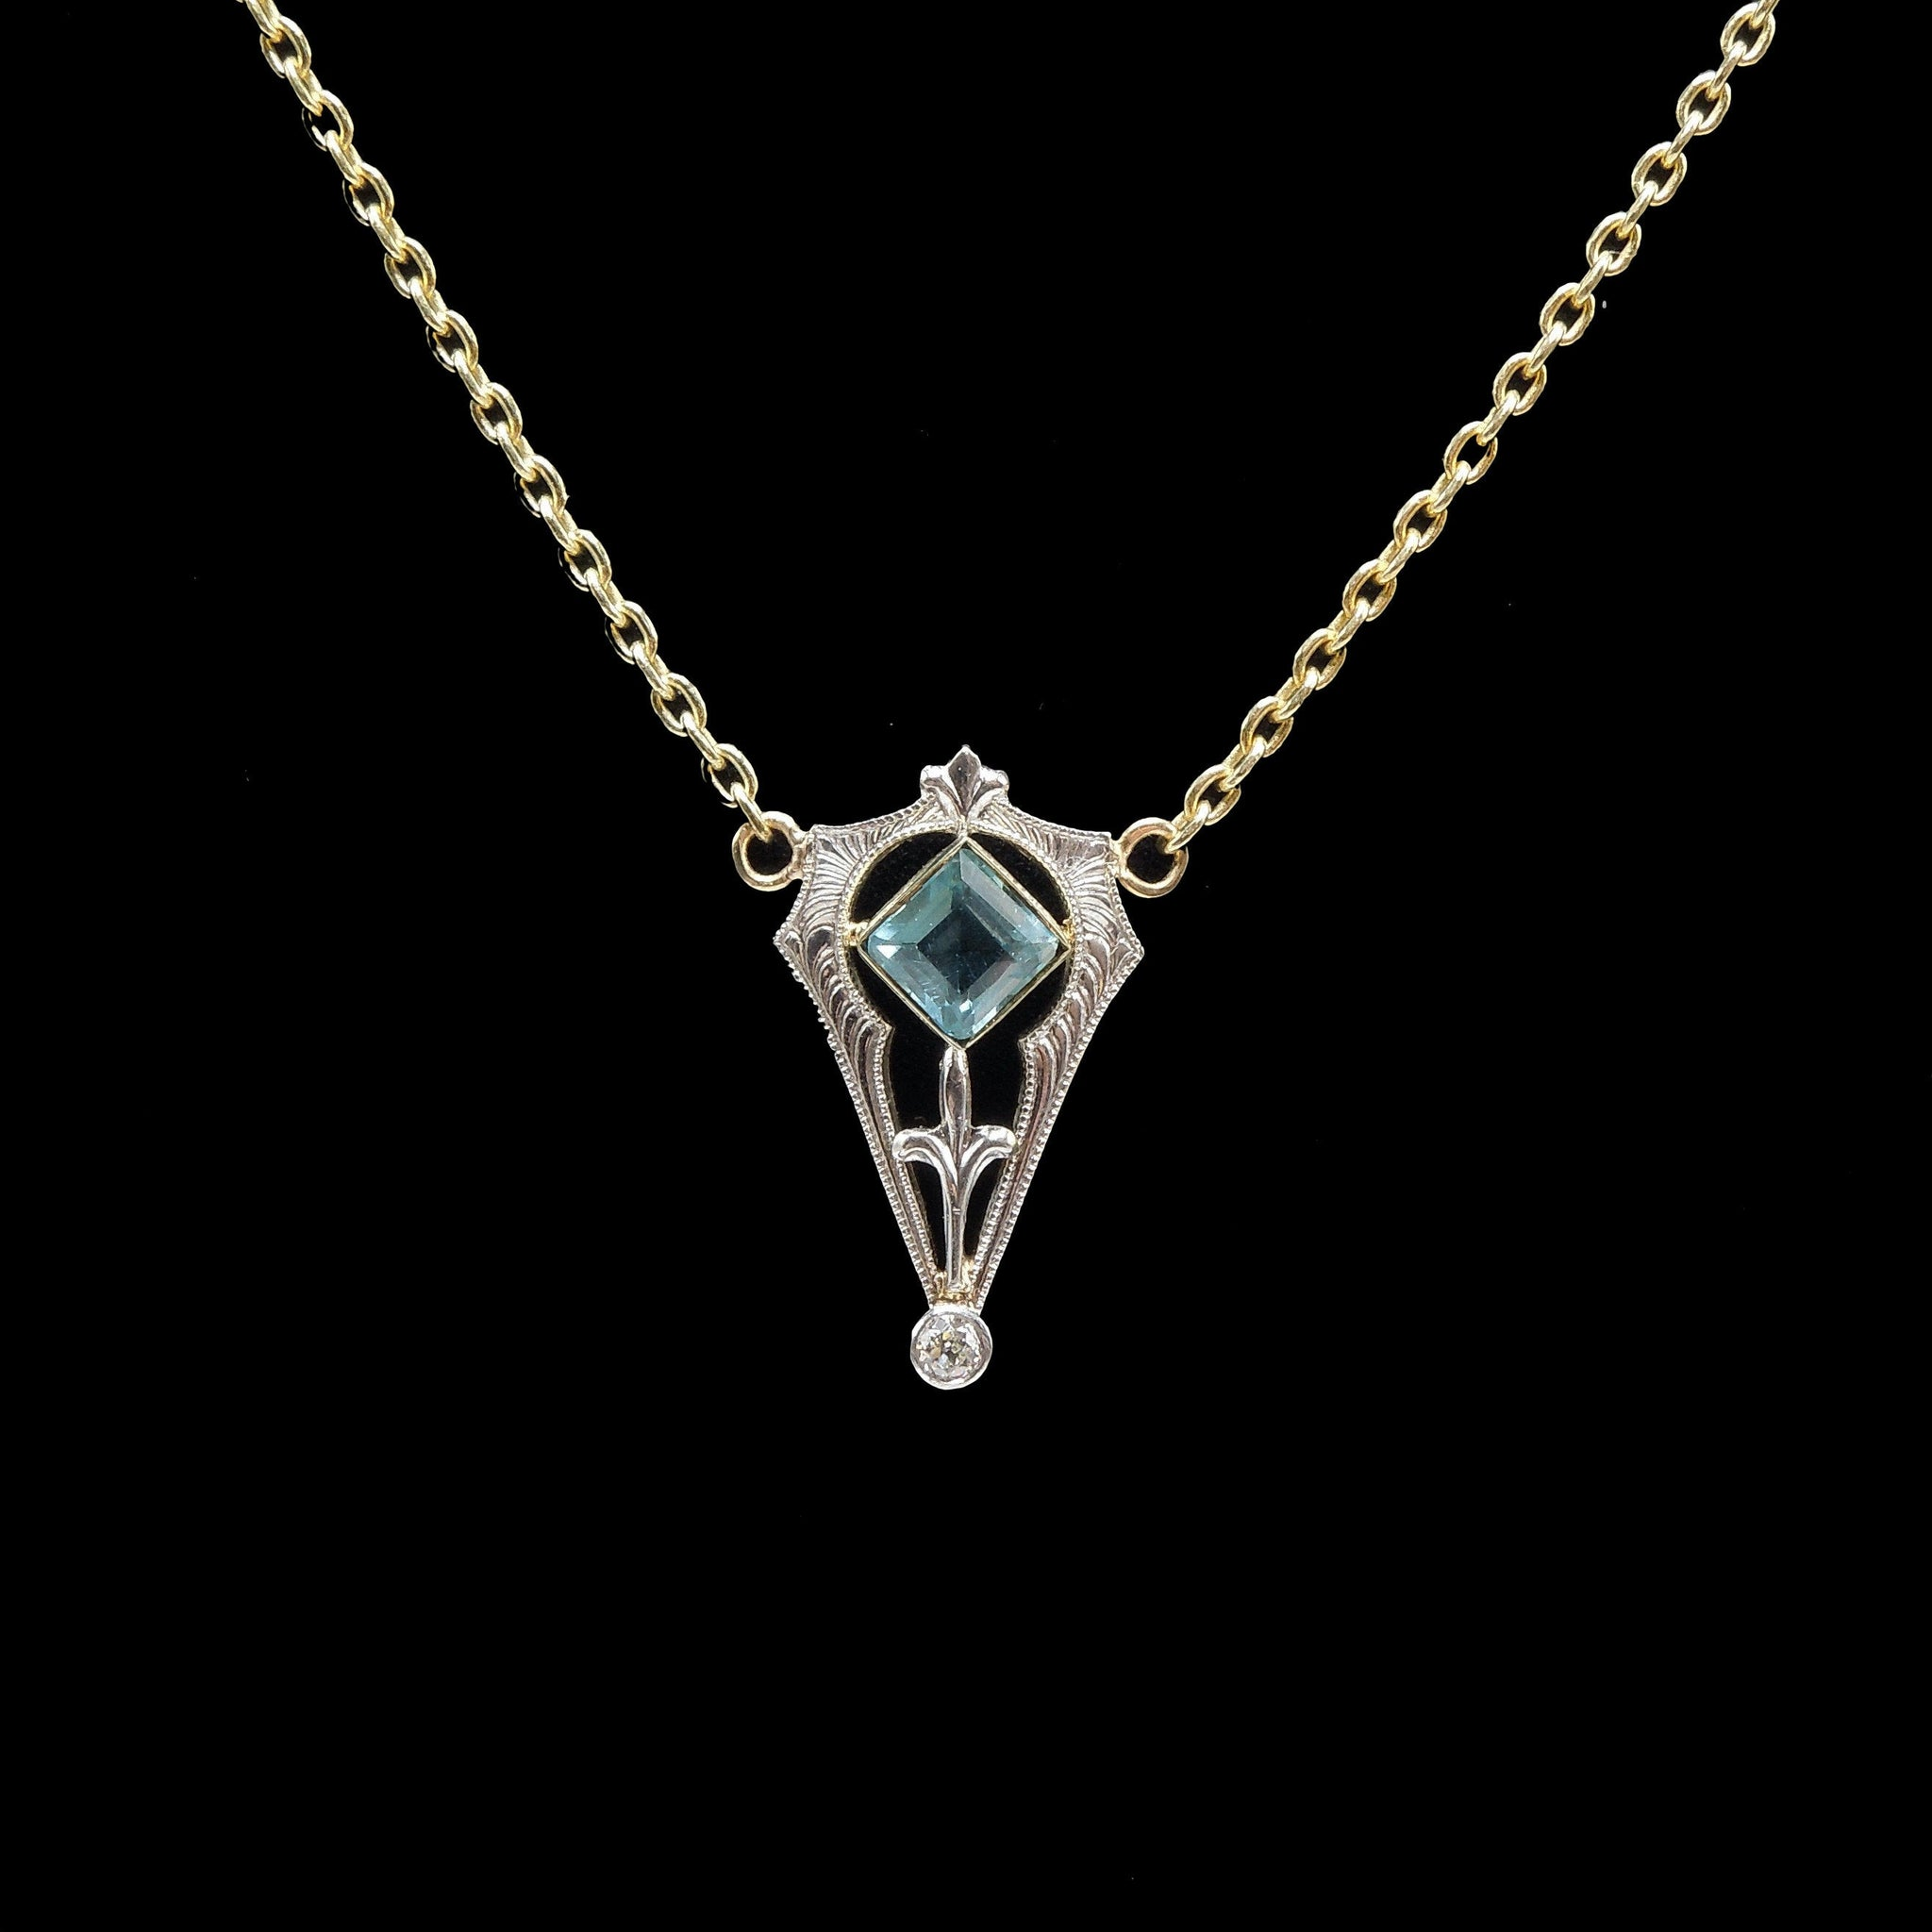 Antique (c. 1900) Edwardian 14K Gold and Platinum Necklace with Square Aquamarine